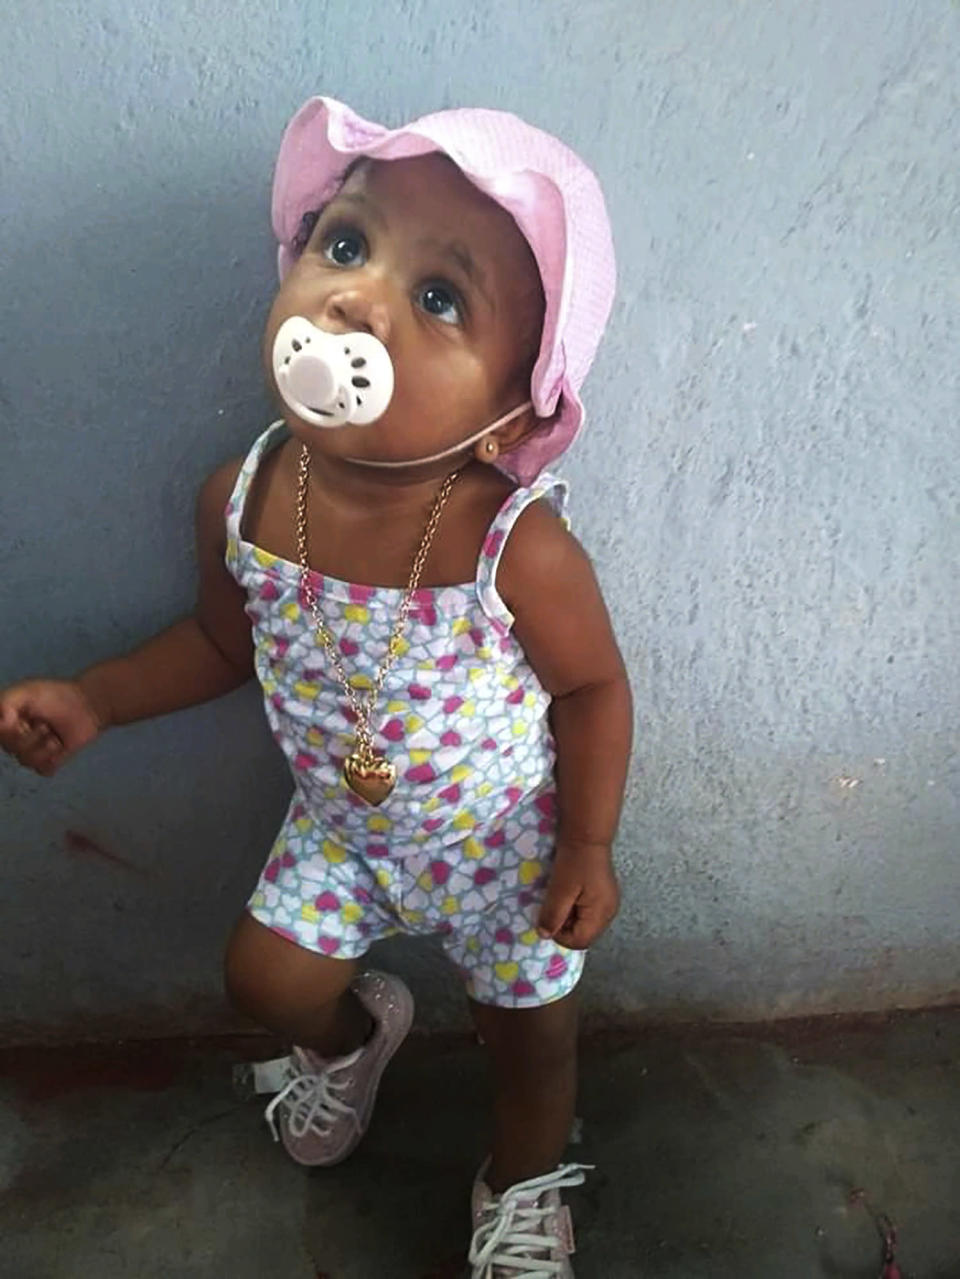 In this Feb. 10, 2020, photo, provided by Andréa de Sousa, her daughter Vitoria Gabrielle looks up while leaning against a wall, in Rio de Janeiro, Brazil. The girl with a constant smile celebrated her first birthday in February, but after recovering from viral meningitis, Vitoria Gabrielle suffered gastrointestinal problems that sent her from her mother's barely furnished hilltop home back to the hospital several times for treatment. It was during an April hospital stay that de Sousa suspects her daughter was infected with the coronavirus that was just starting to circulate in Rio and Brazil. Vitoria Gabrielle died in June. (Courtesy of Andréa de Sousa via AP)